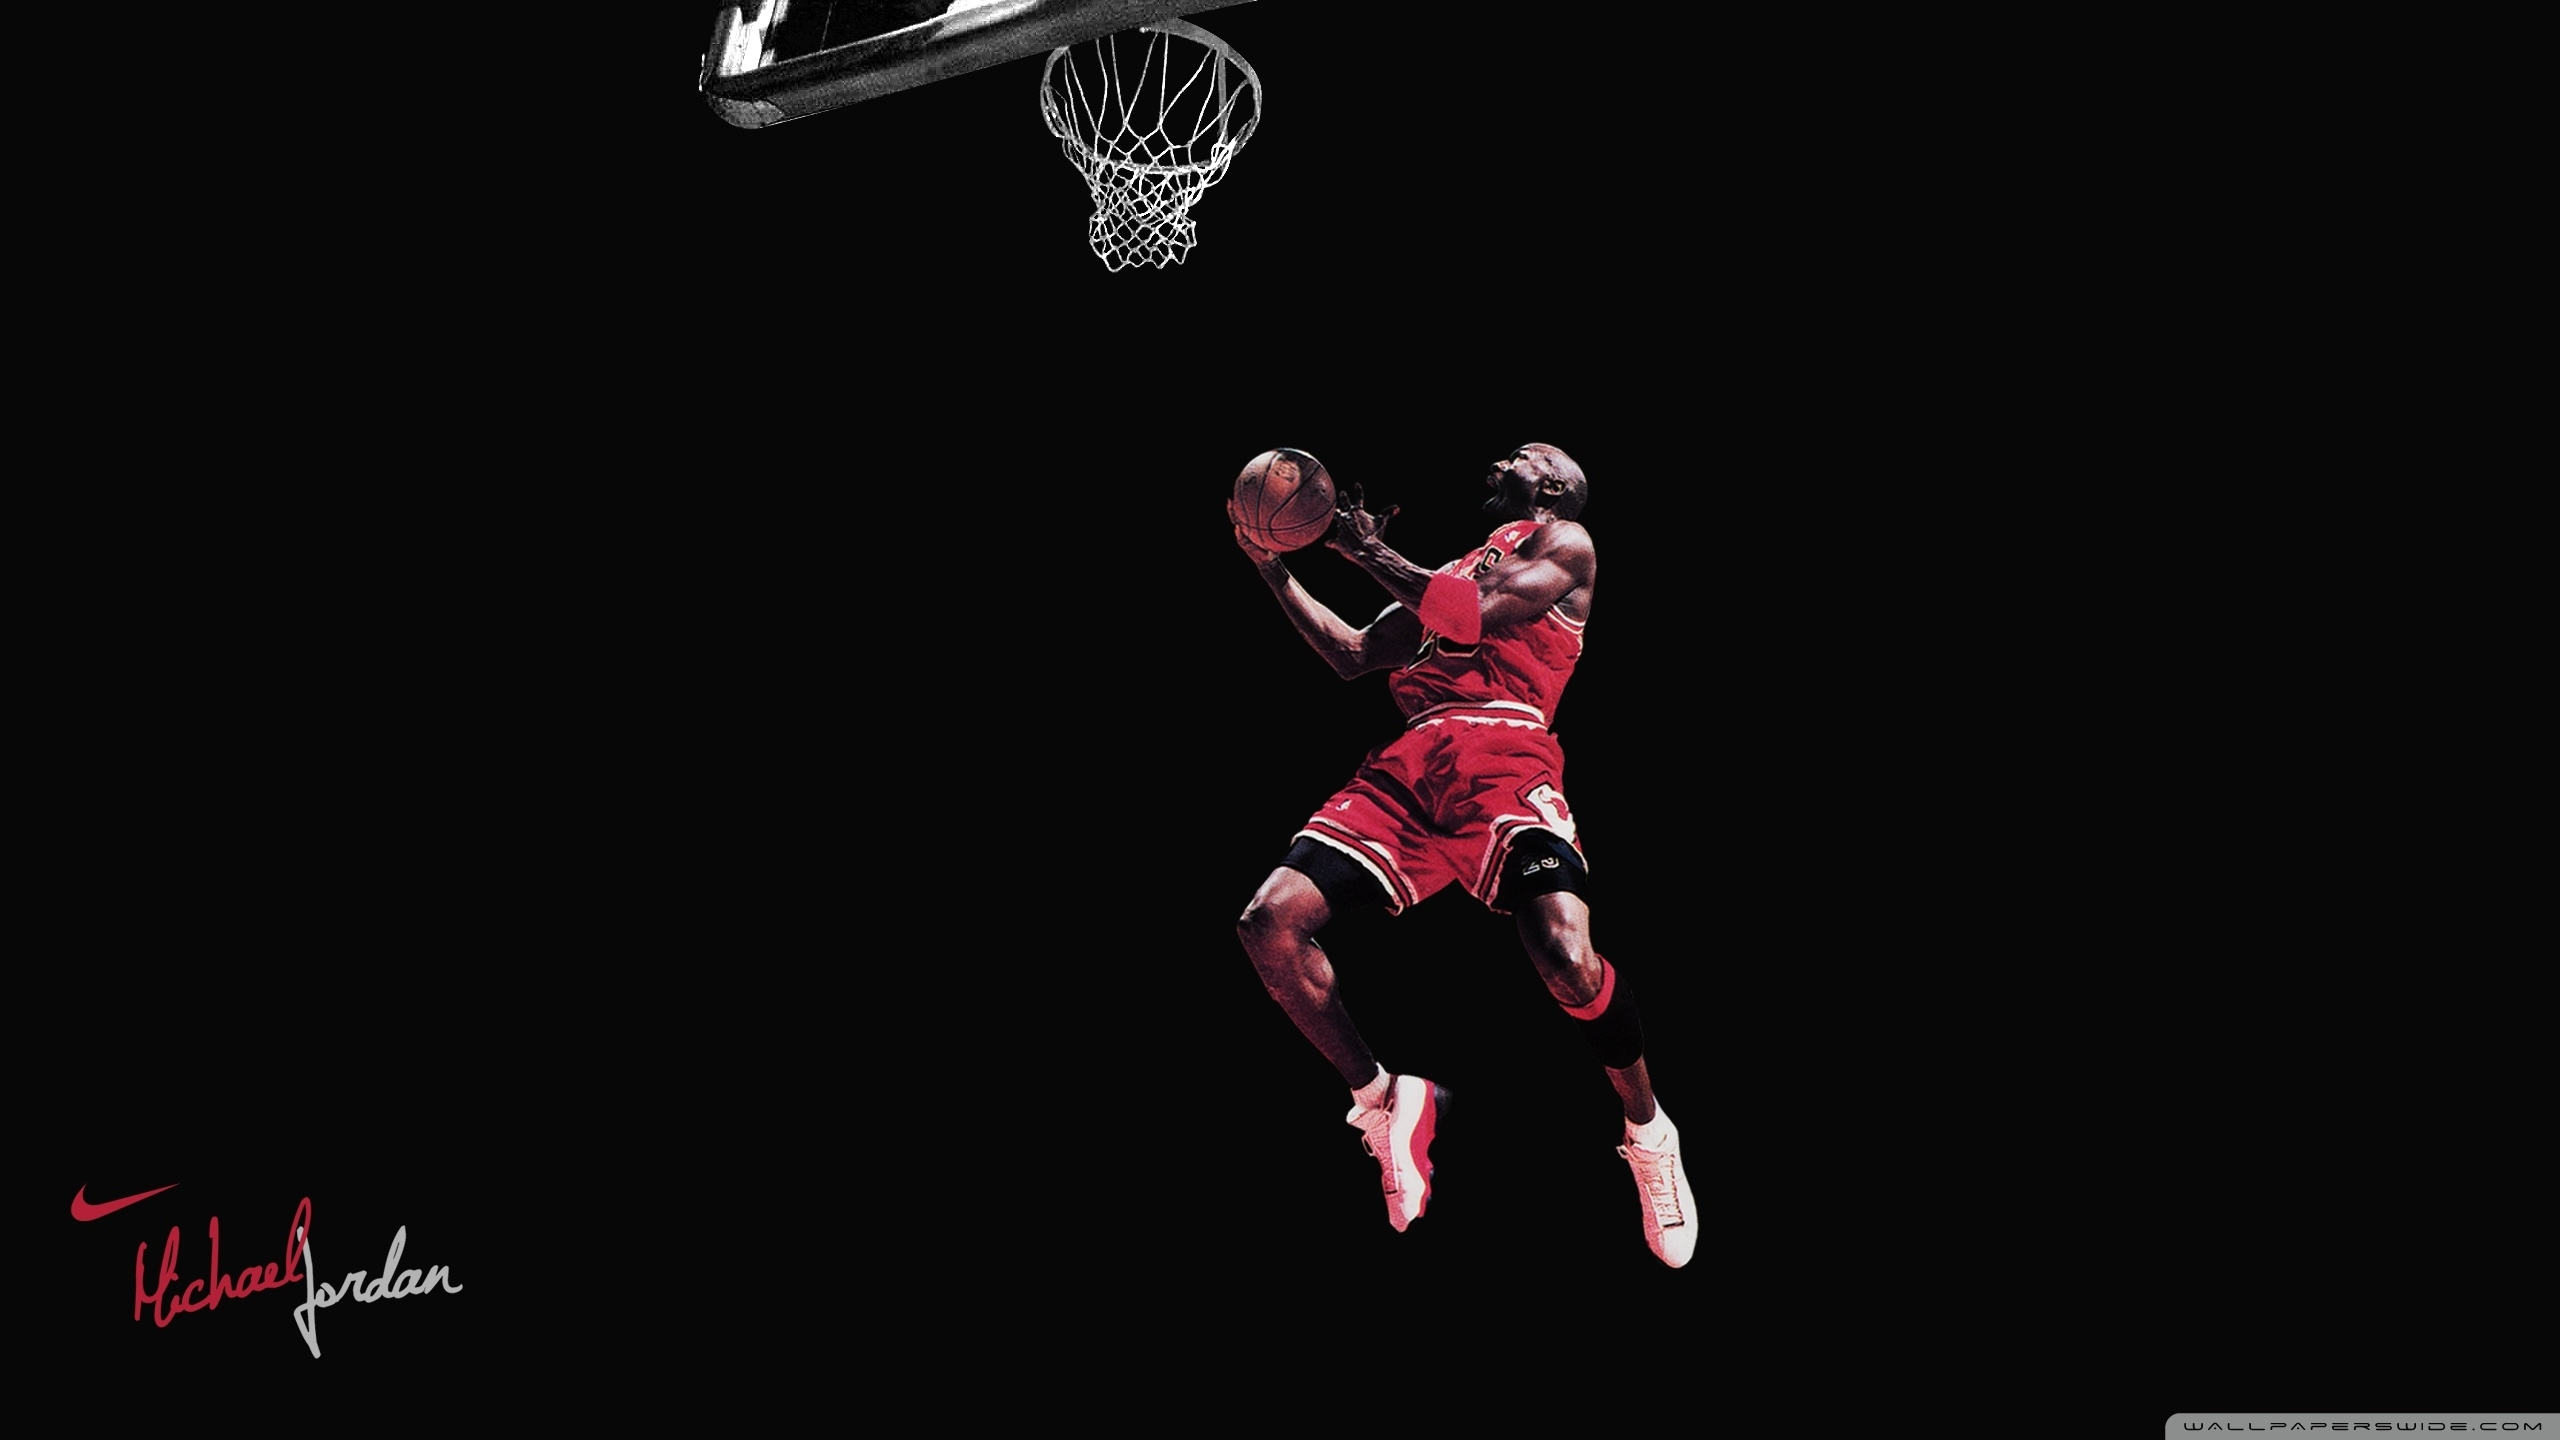 michael jordan clean ❤ 4k hd desktop wallpaper for 4k ultra hd tv